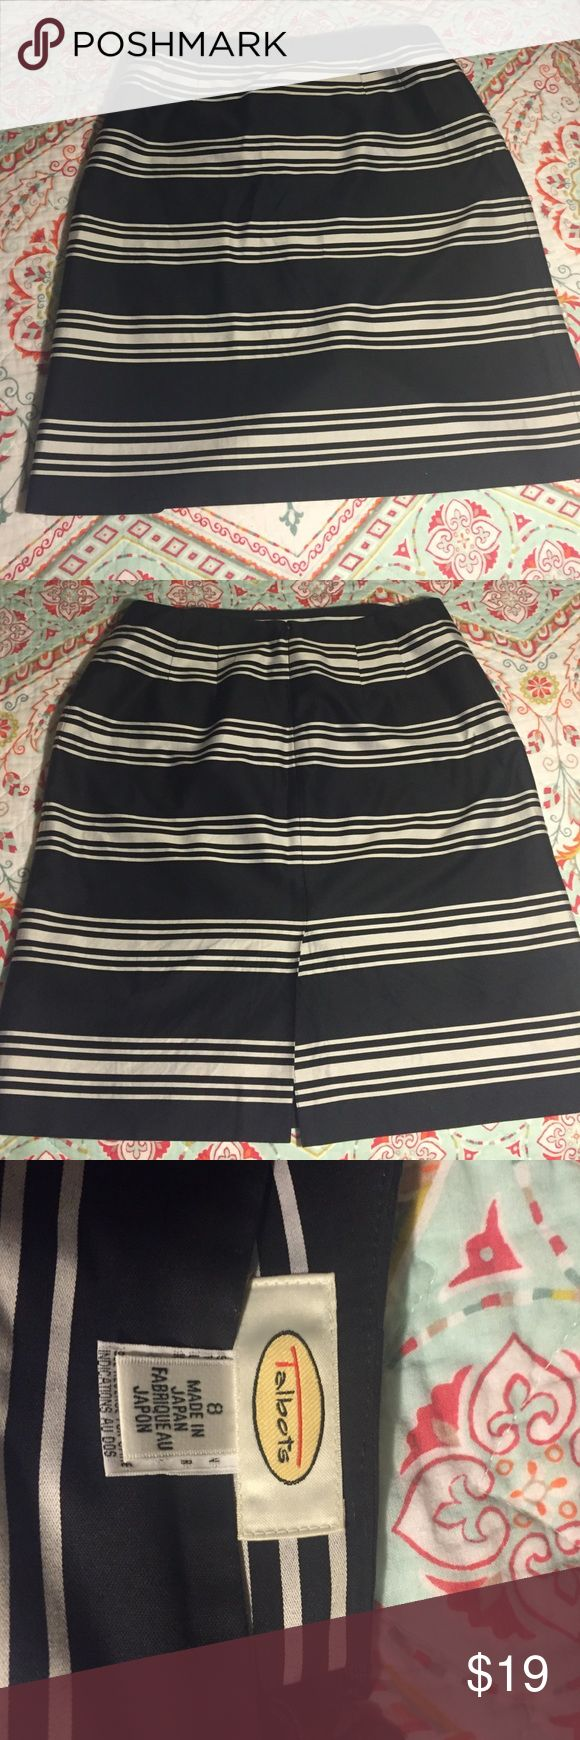 Black and white striped skirt Polyester material. Fits at waist. Zips in back with button inside. Slit in back is about 4 inches. Talbots Skirts Pencil